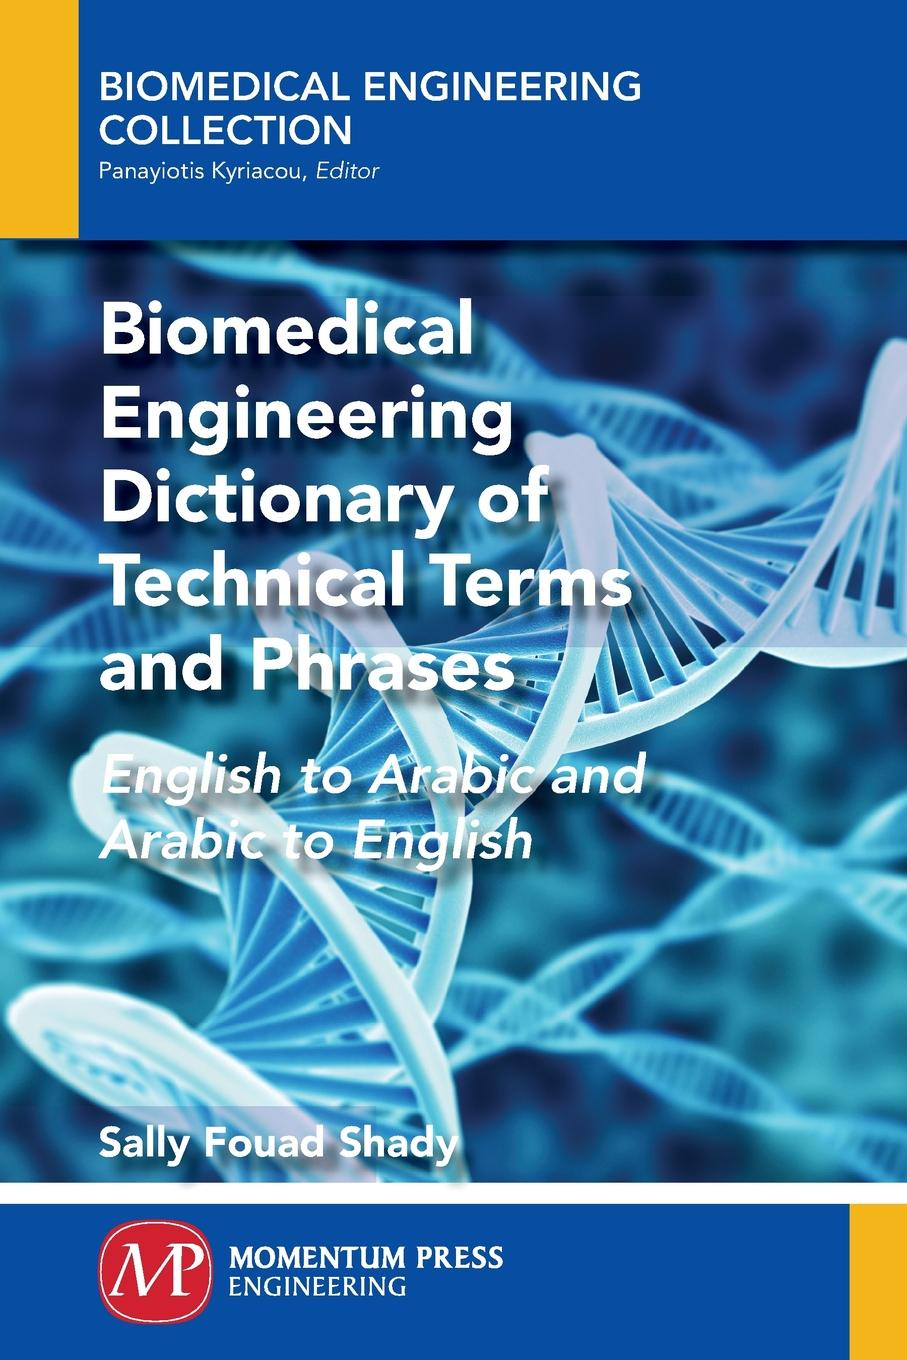 Sally F. Shady Biomedical Engineering Dictionary of Technical Terms and Phrases. English to Arabic and Arabic to English yahia zare mehrjerdi english for industrial engineering students